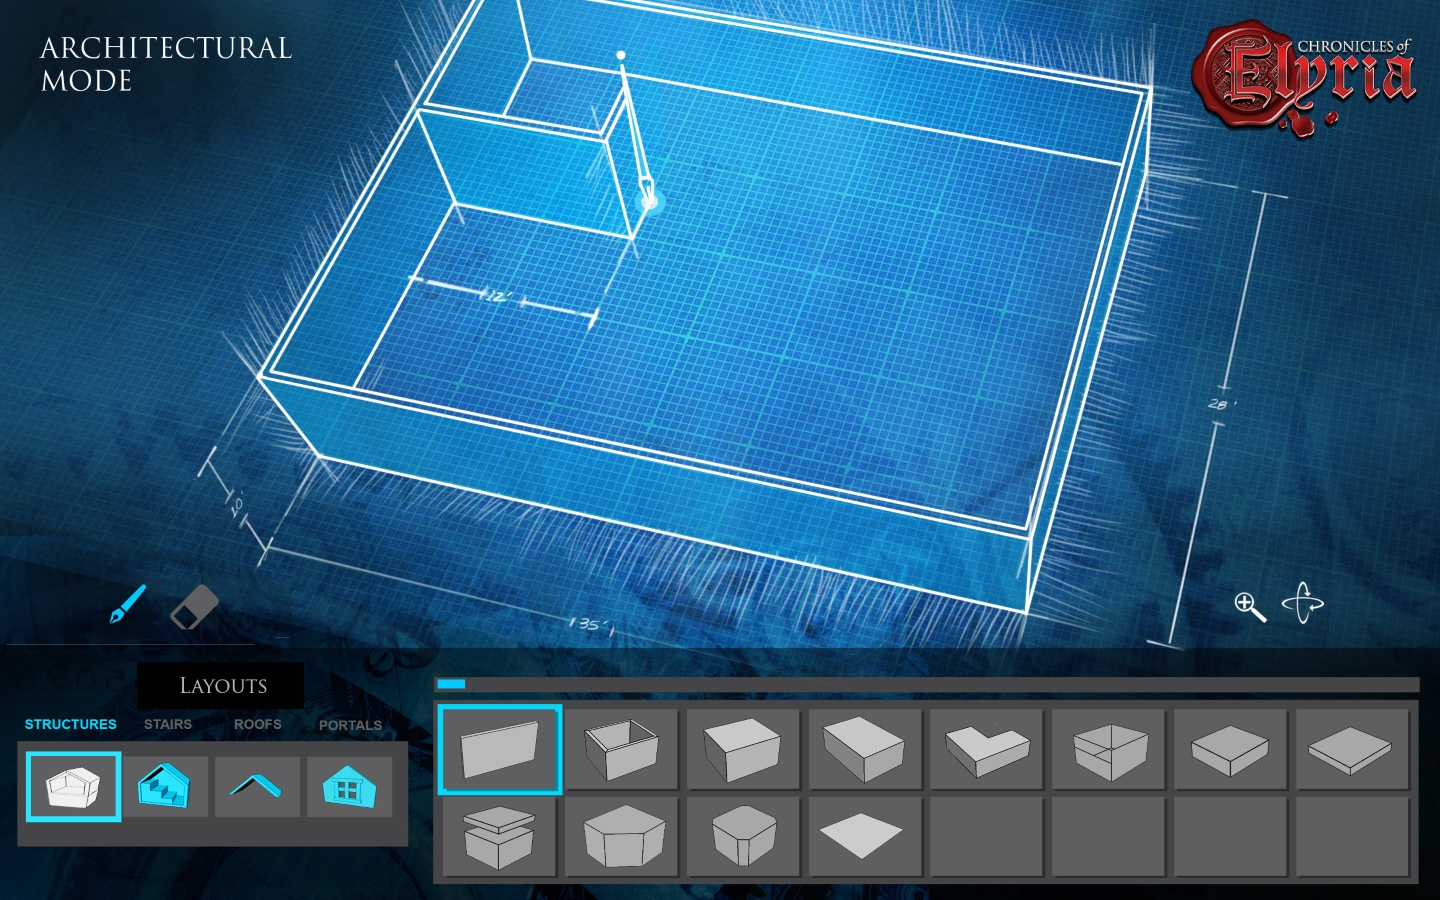 In-game screenshot showing the blueprint architectural tool